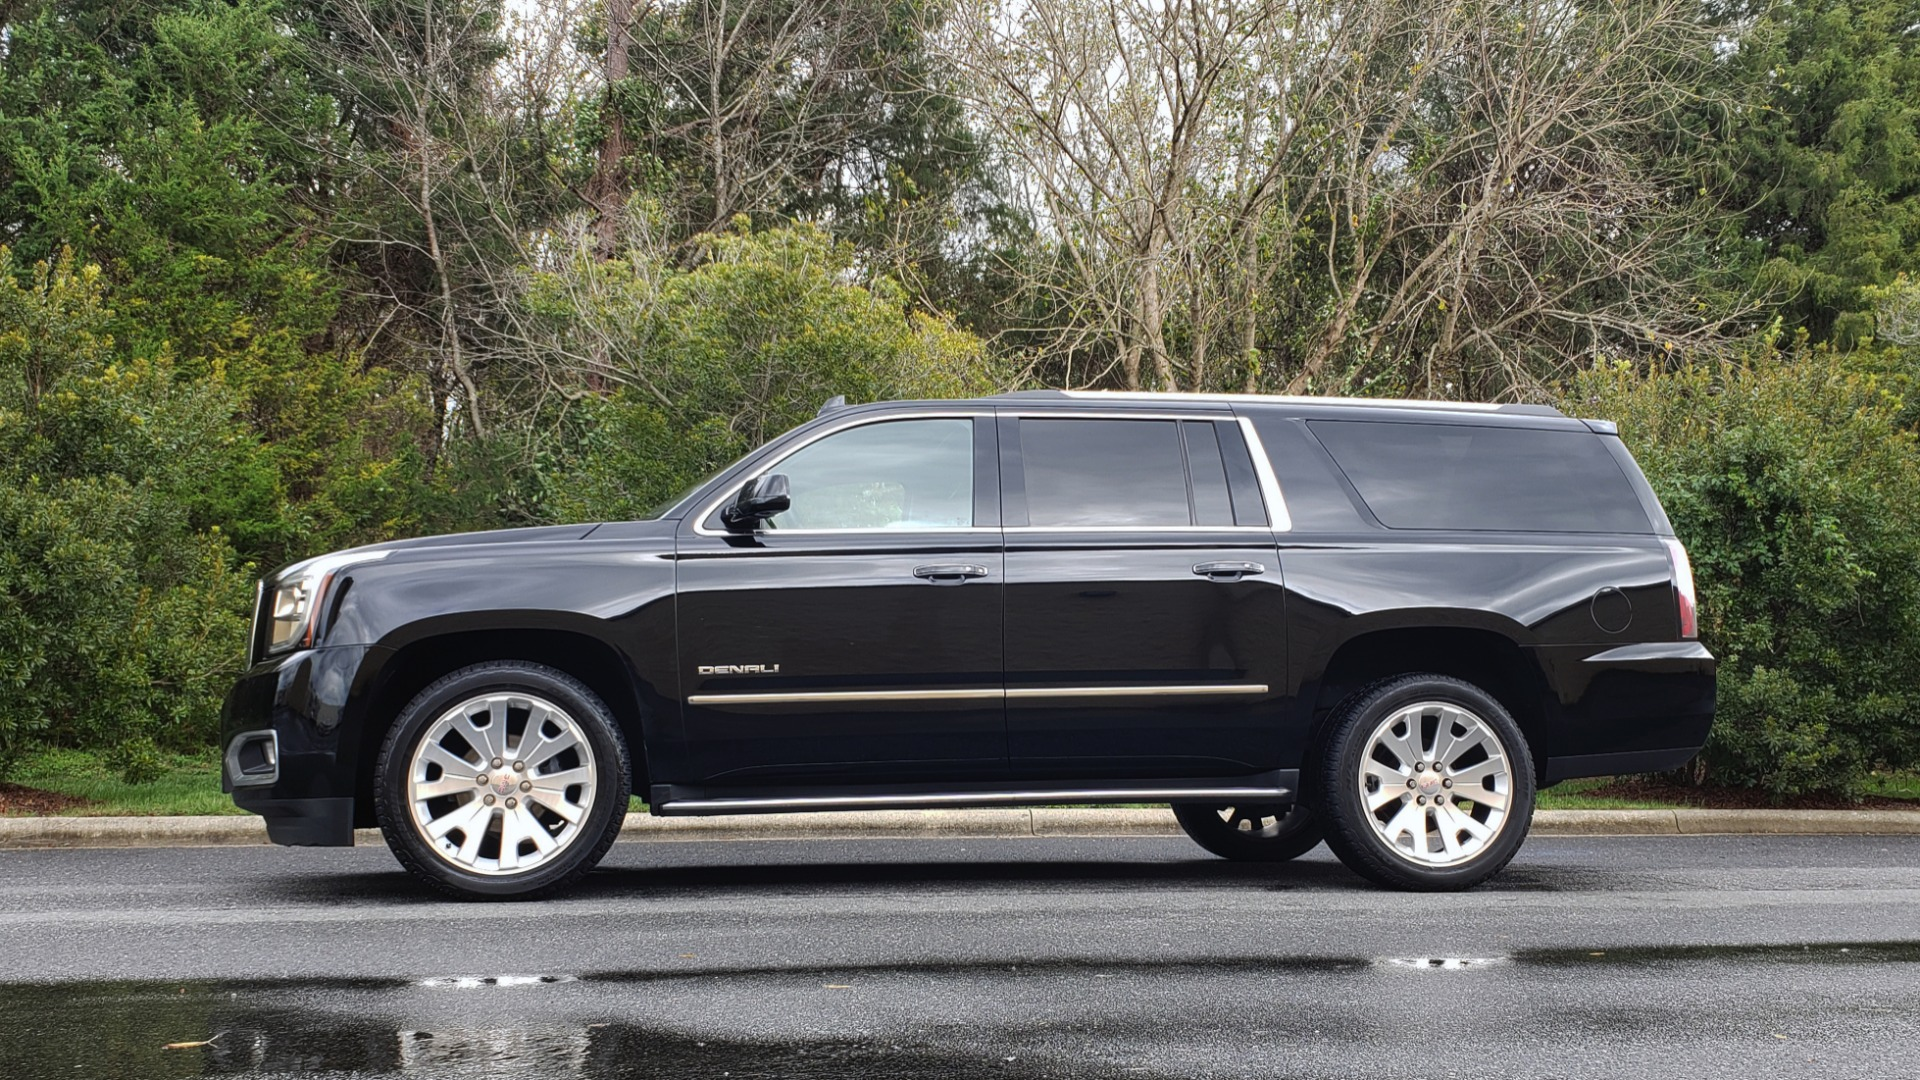 Used 2017 GMC YUKON XL DENALI 4WD / NAV / SUNROOF / ENT / 3-ROWS / BOSE / REARVIEW for sale $48,695 at Formula Imports in Charlotte NC 28227 2